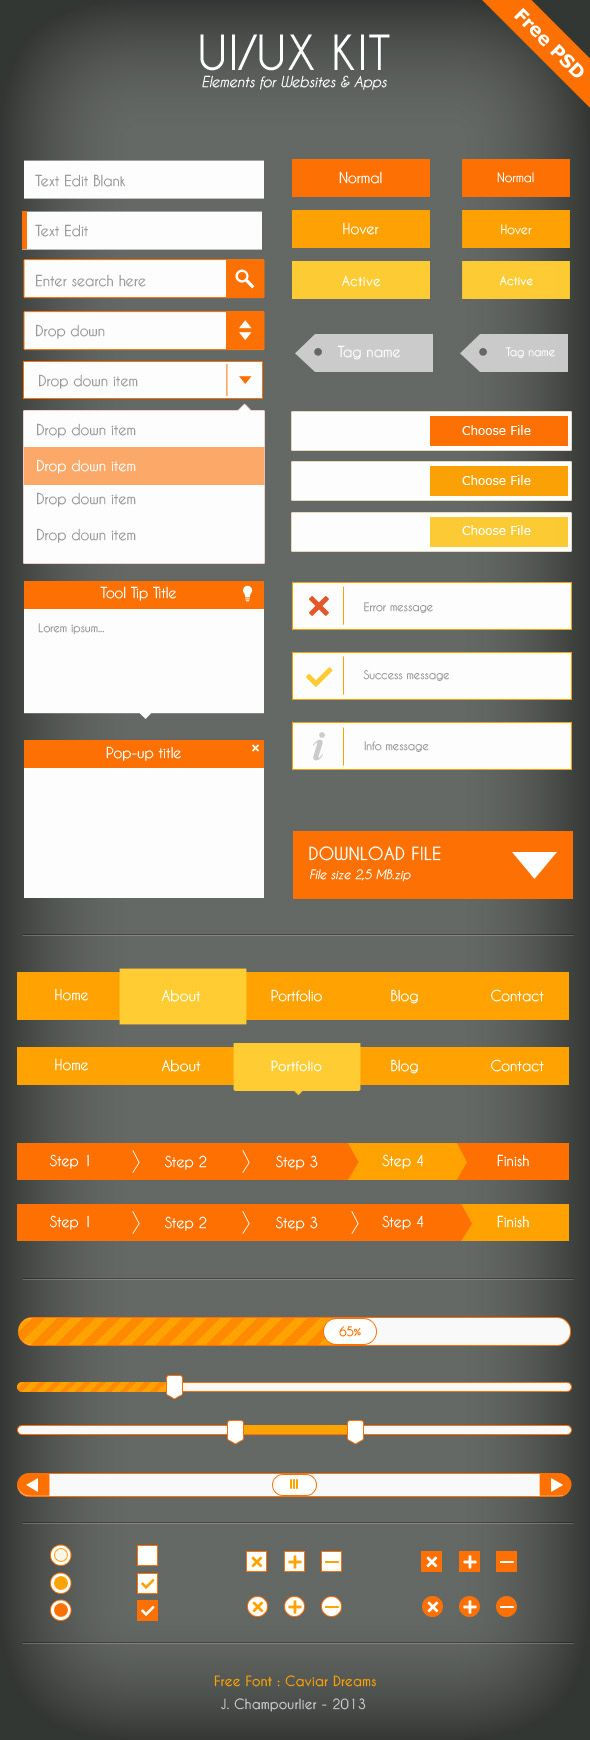 UI/UX Flat design - Free PSD by Julie Champourlier, via Behance